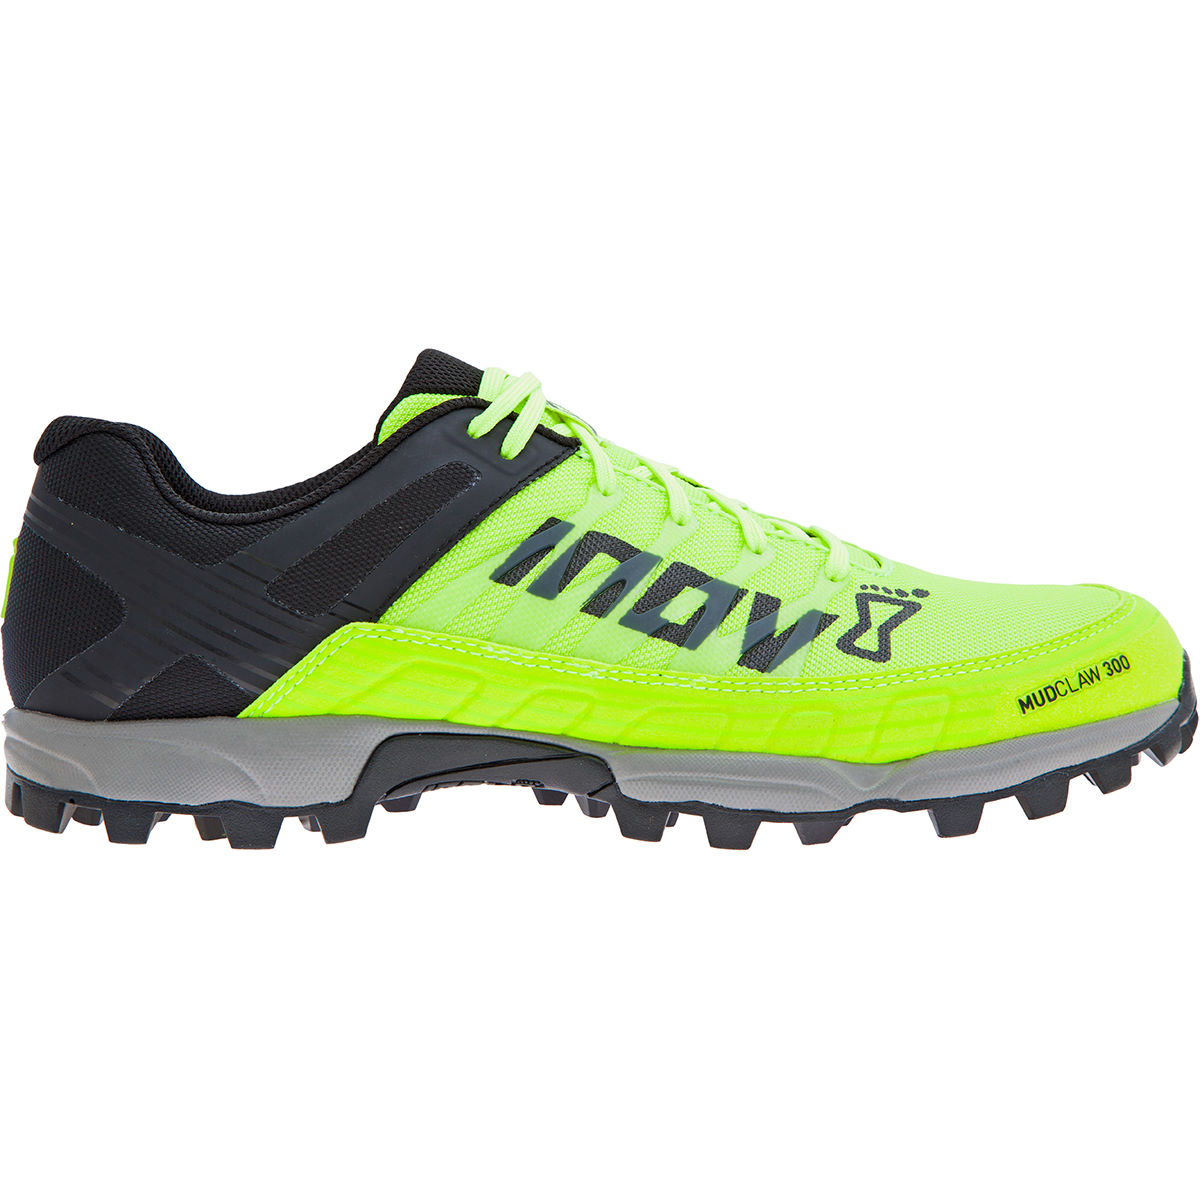 Wiggle inov 8 mudclaw 300 shoes offroad running shoes for Ecksofa 300 x 200